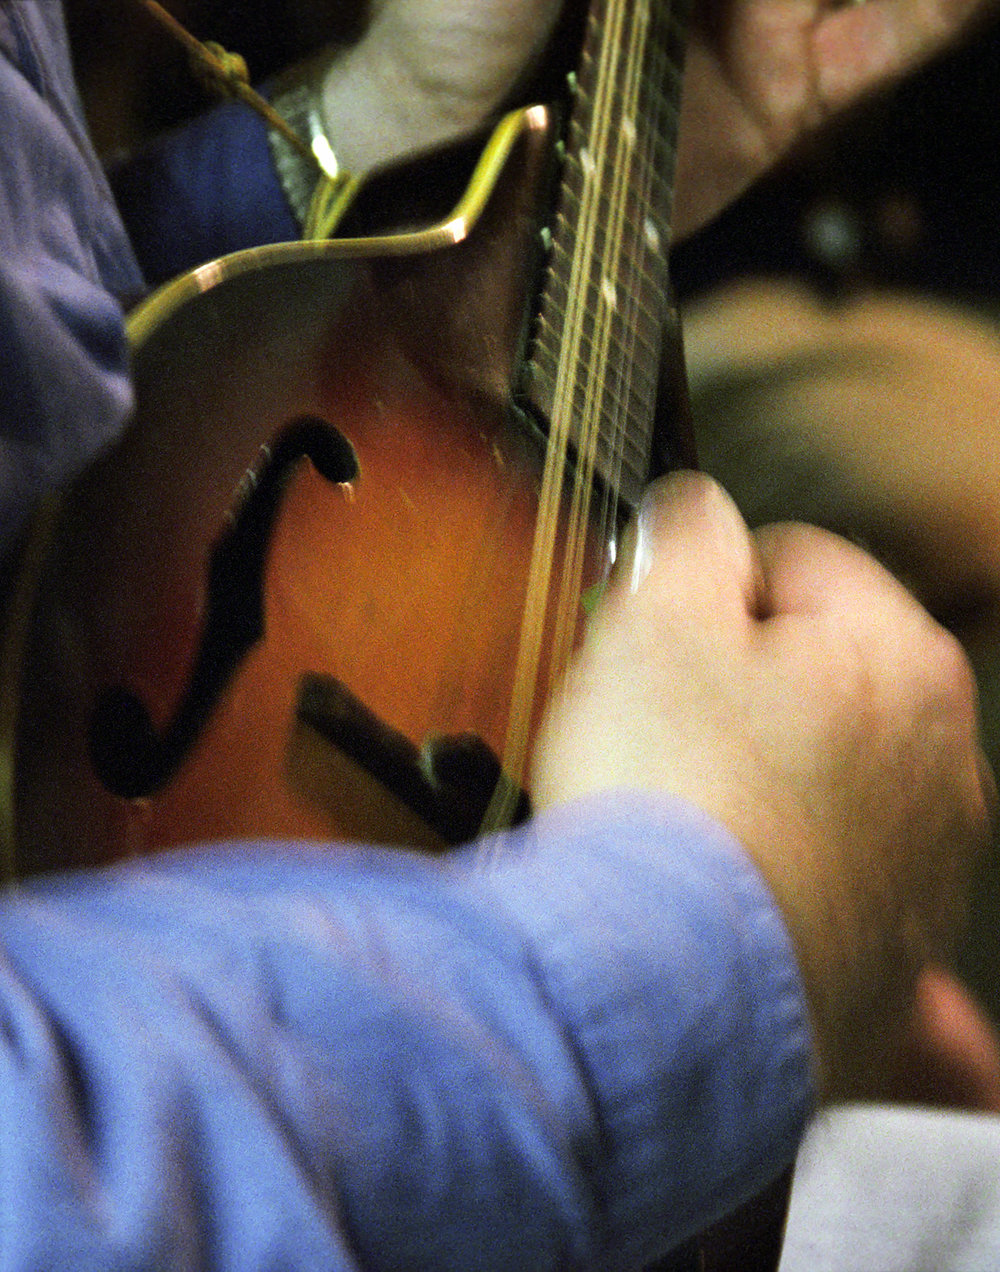 Mandolin Player, Todd Old Time Music Jam, 2001